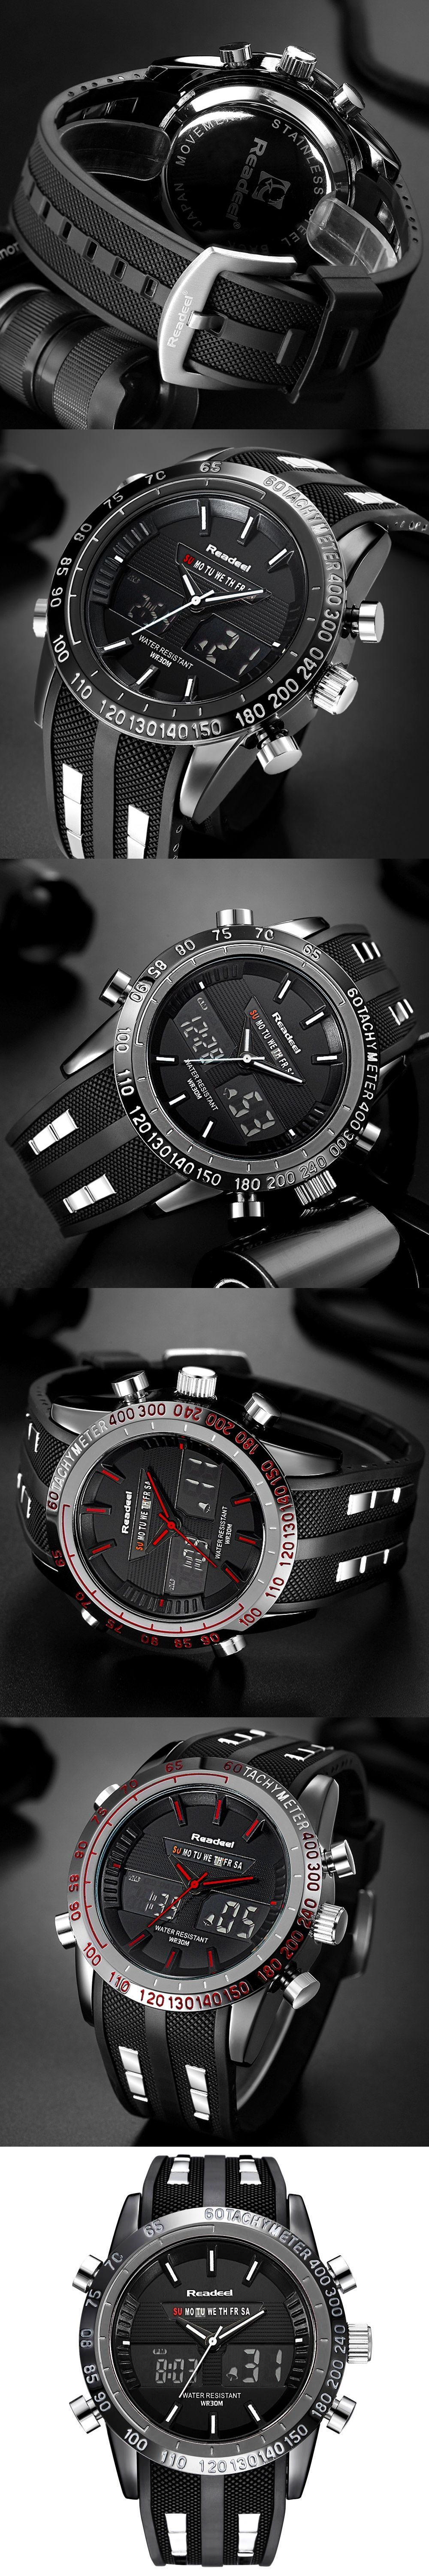 to life stainless in cool watches emporio wear waterproof style armani black steel